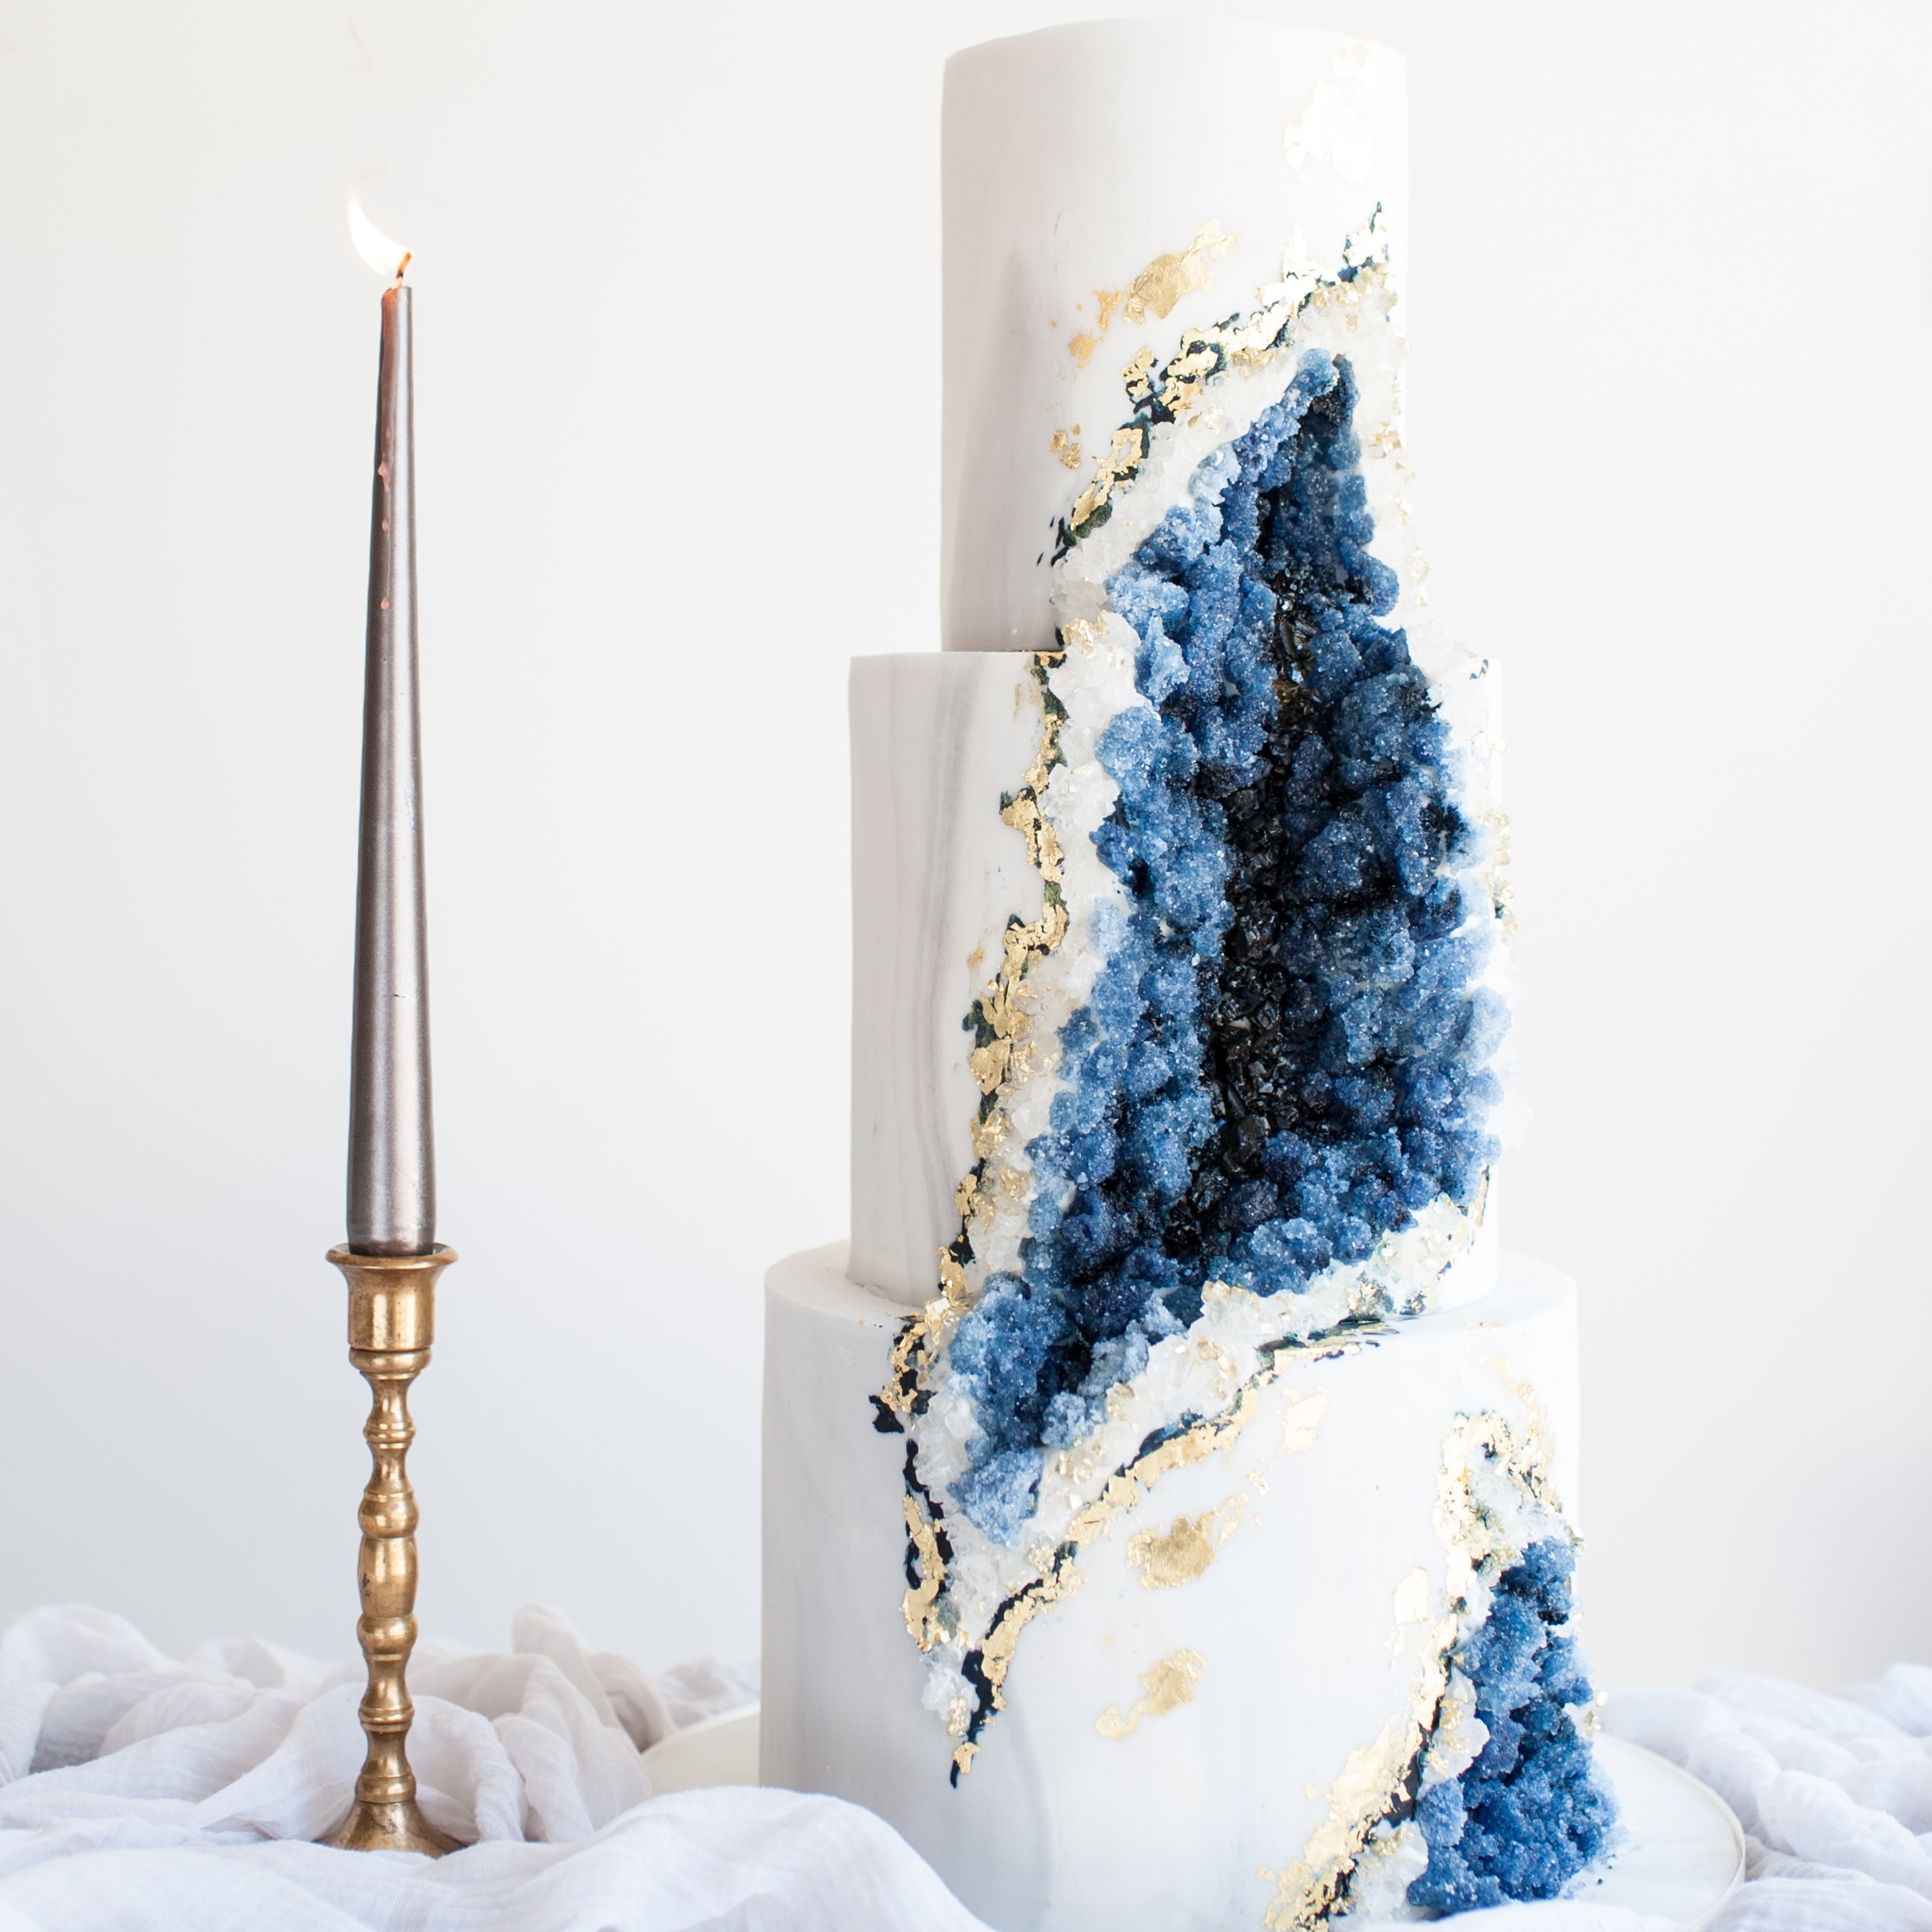 INSPIRED BY EARTH  Natural mineral inspired cakes of Marble, Geode, Concrete & Stone with touches of Gold & silver